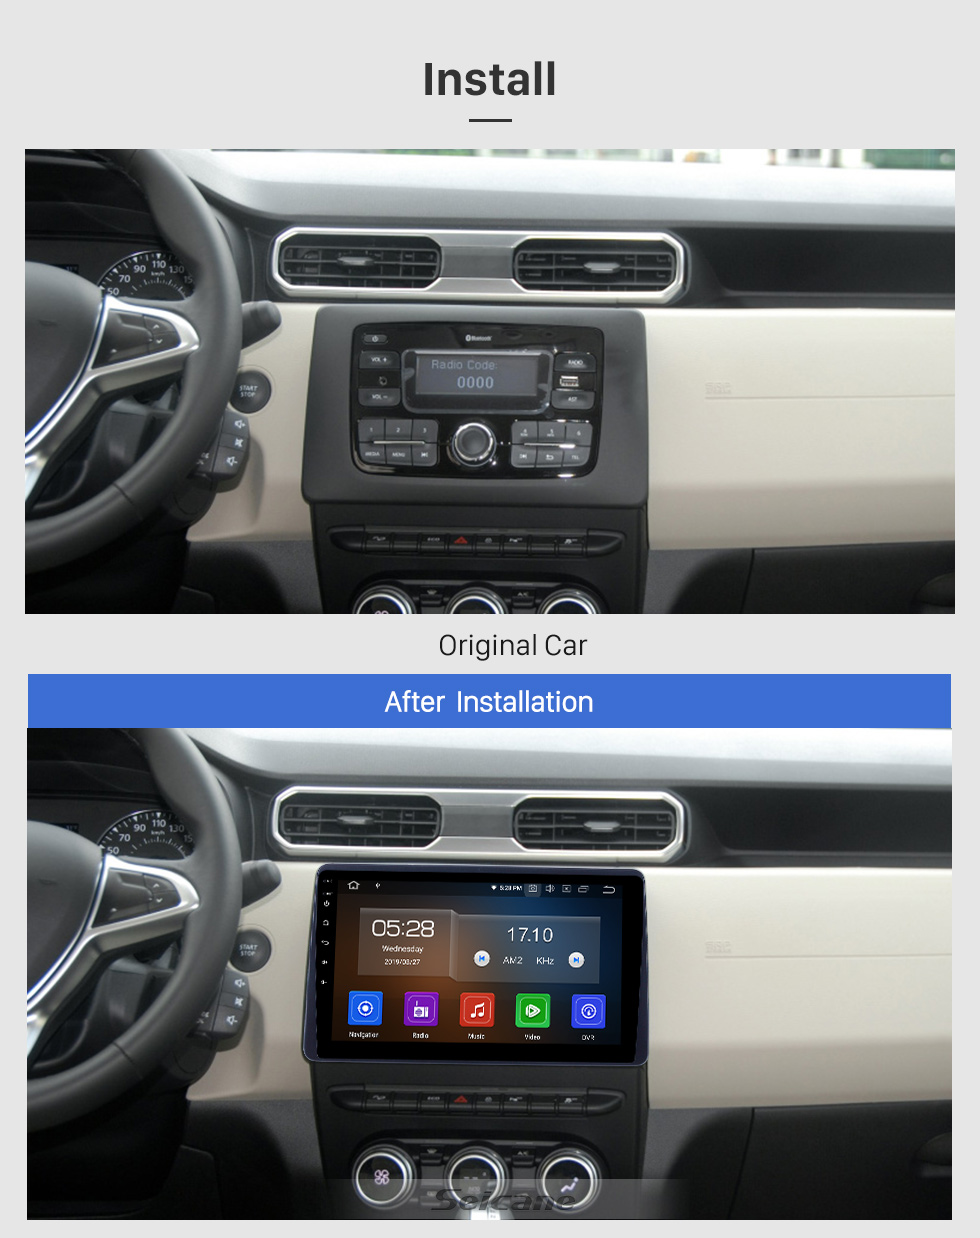 Seicane 10.1 inch Android 9.0 GPS Navigation Radio for 2018 Renault Duster Bluetooth HD Touchscreen AUX Carplay support Backup camera